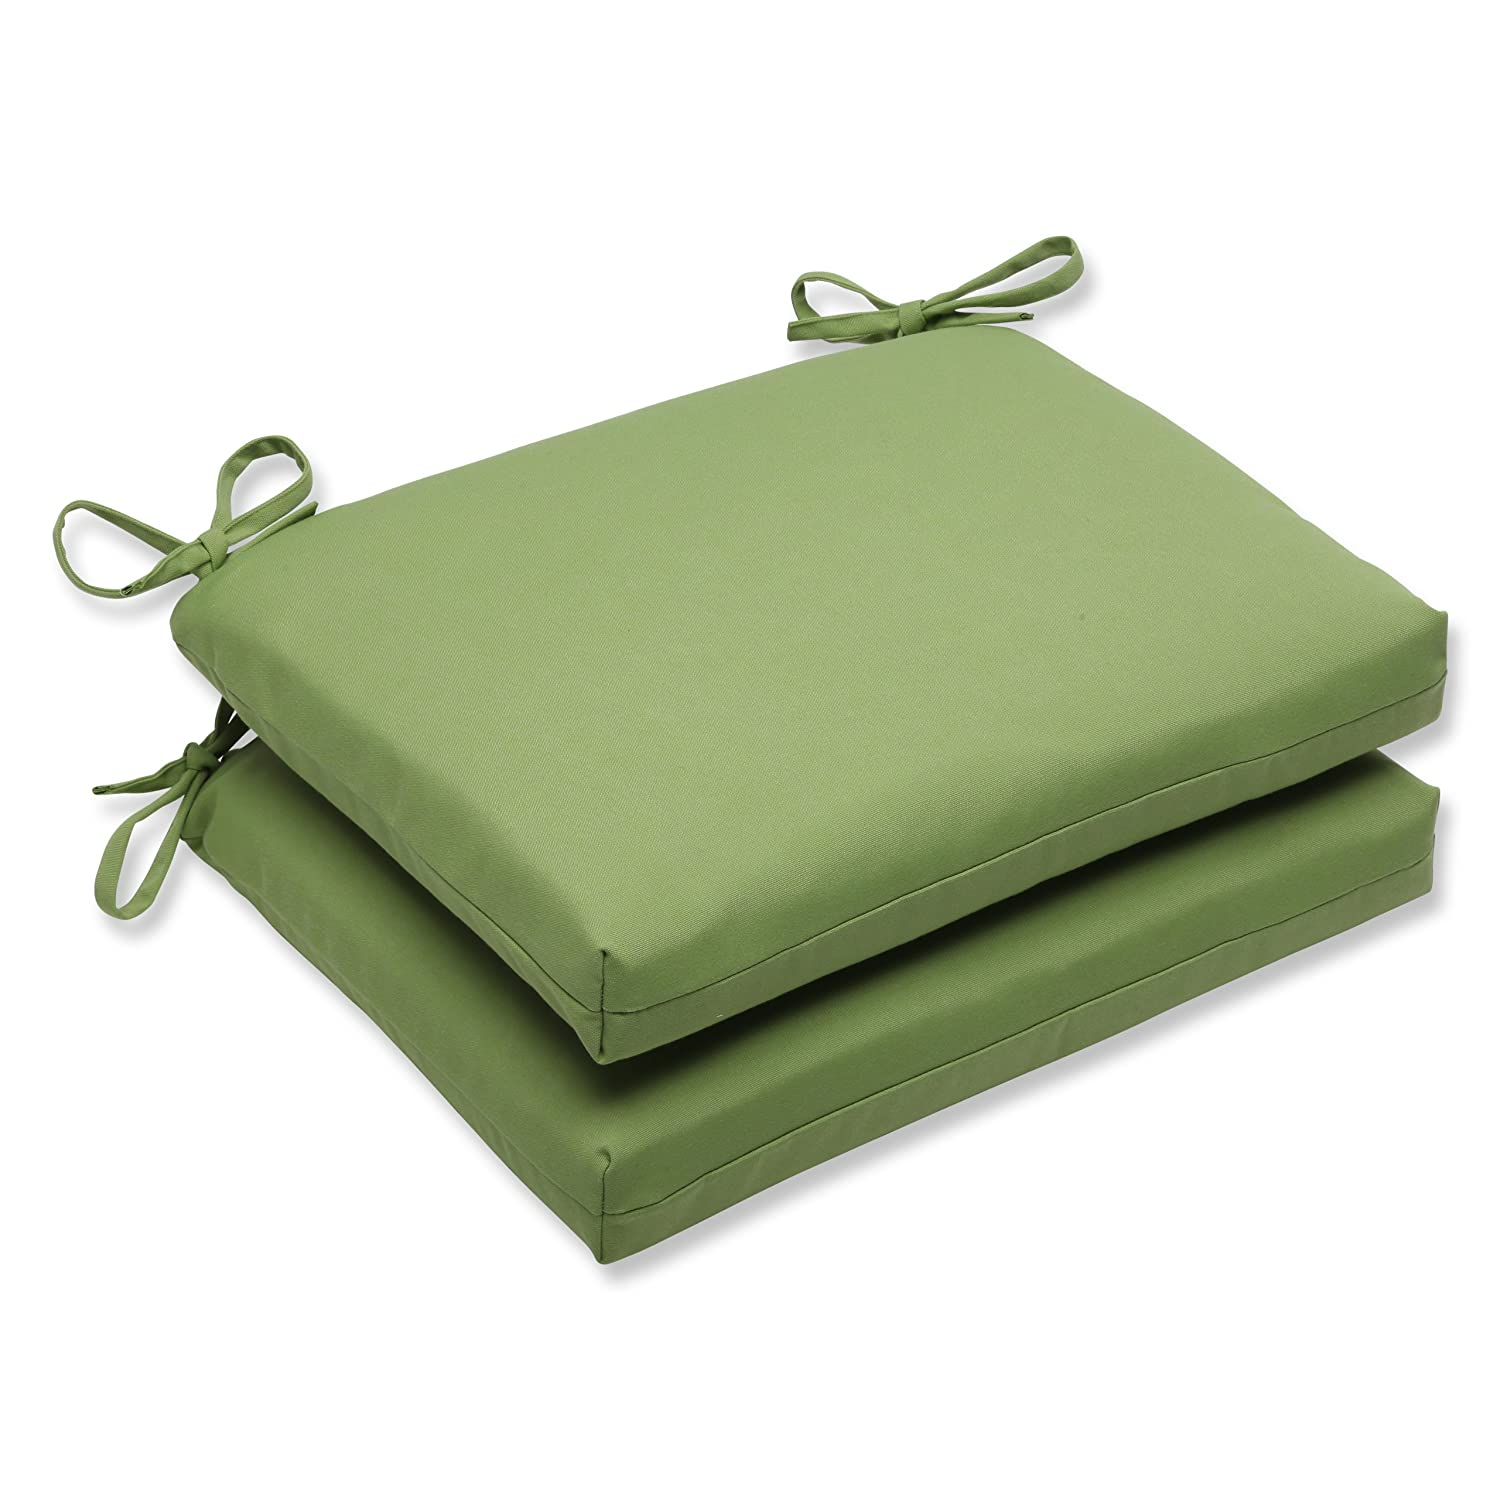 Pillow Perfect Indoor Outdoor Squared Corners Seat Cushion with Sunbrella Canvas Ginkgo Fabric, Set of 2, 18.5 in. L X 16 in. W X 3 in. D, Green